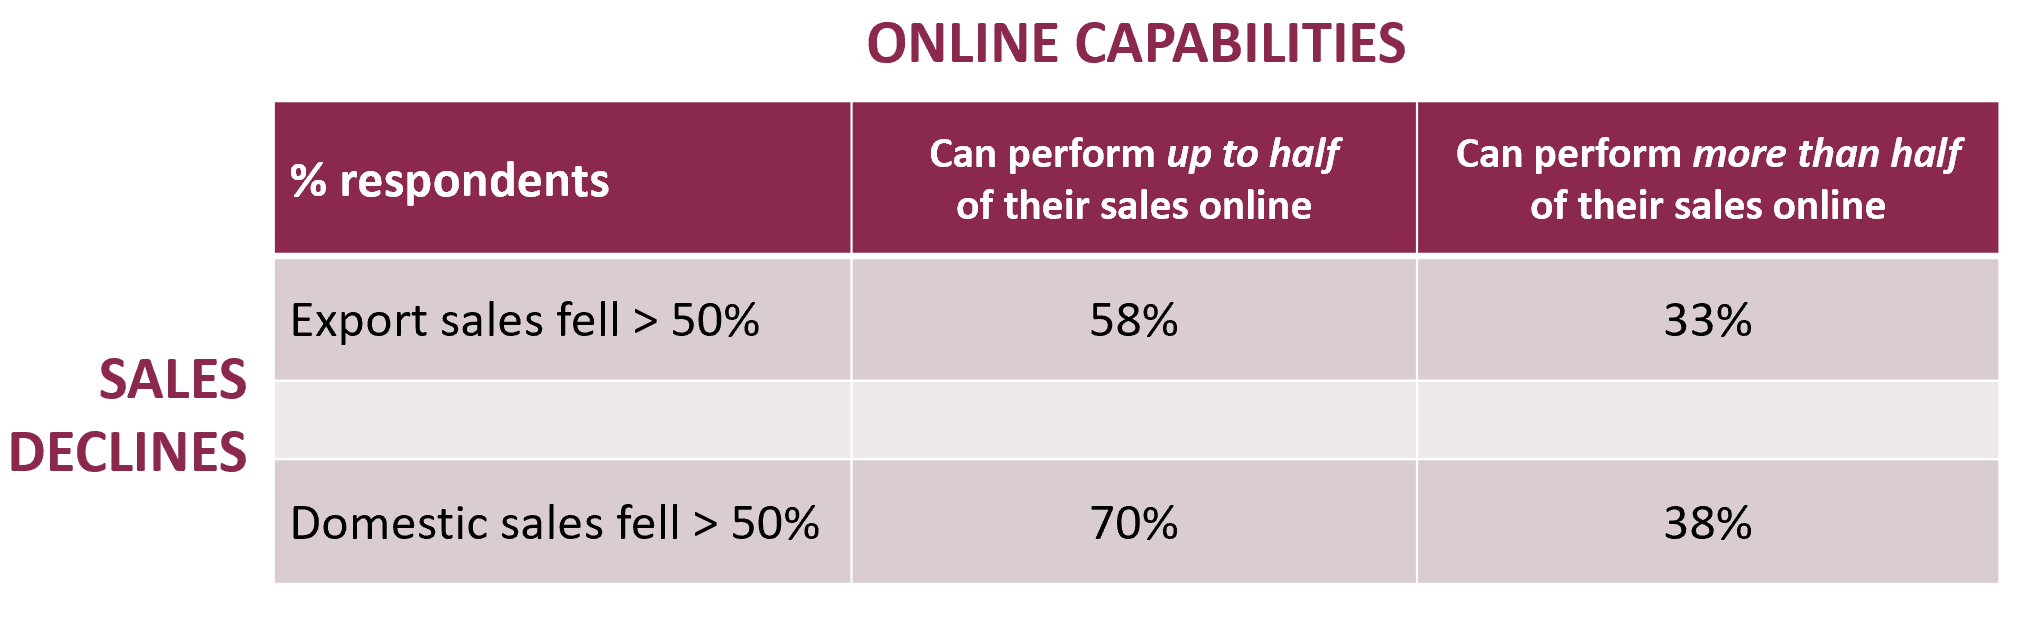 Companies who were able to sell >50% online, experienced COVID-19 less domestic and export sales declines